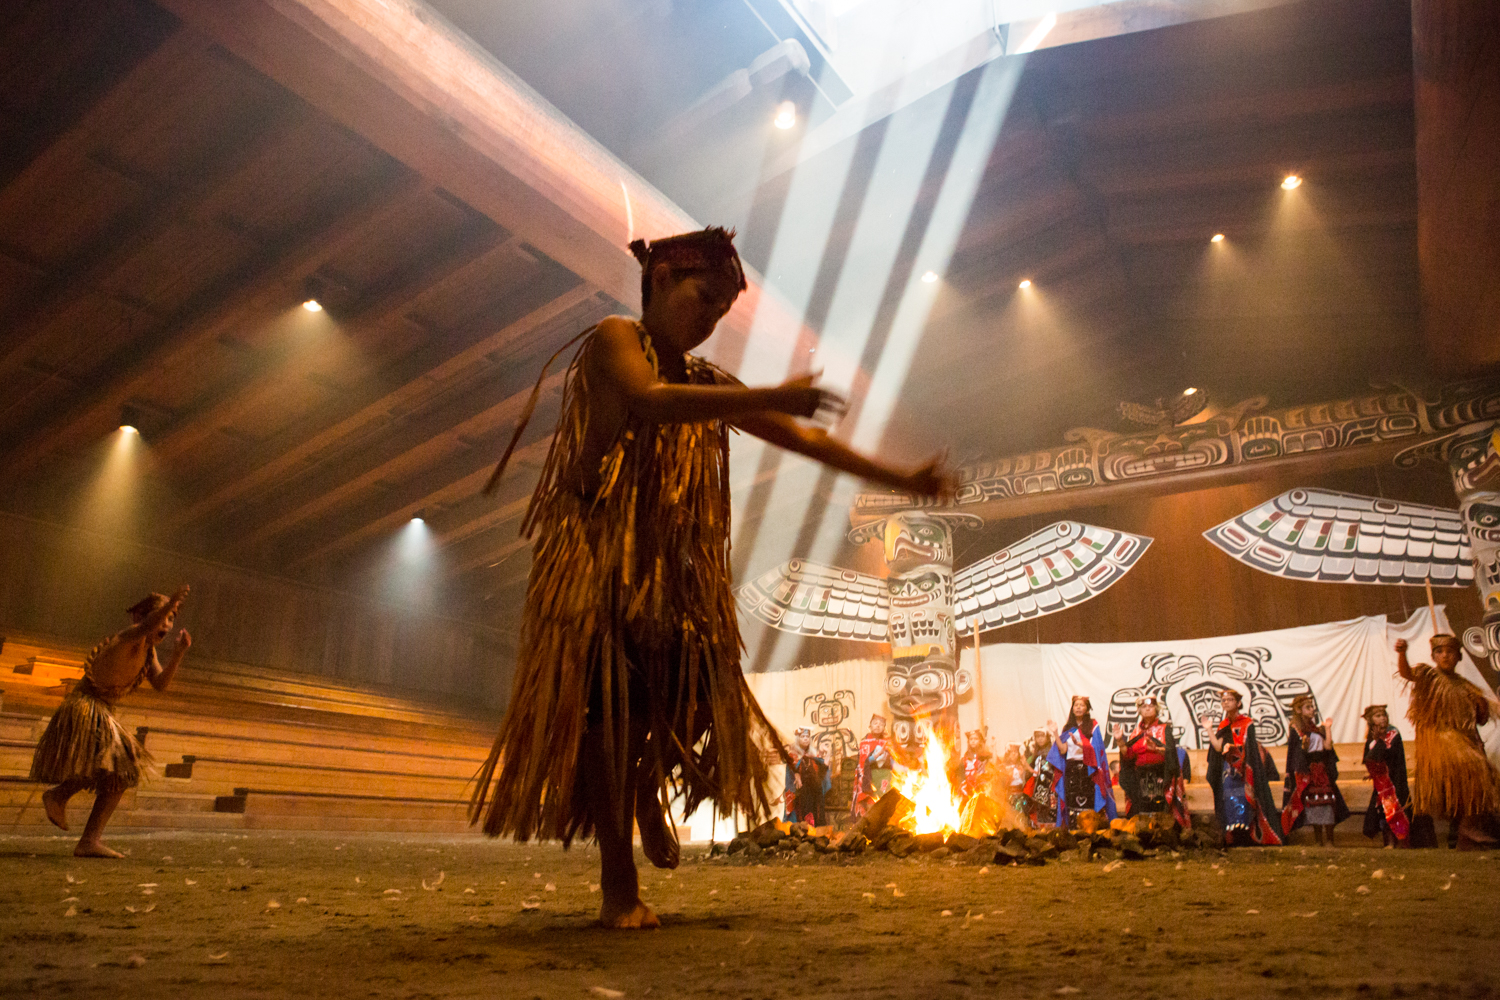 A young boy,part of the U'mista Cultural Center Group, dances within a traditional longhouse in Alert Bay, near the coast of Vancouver Island, British Columbia.